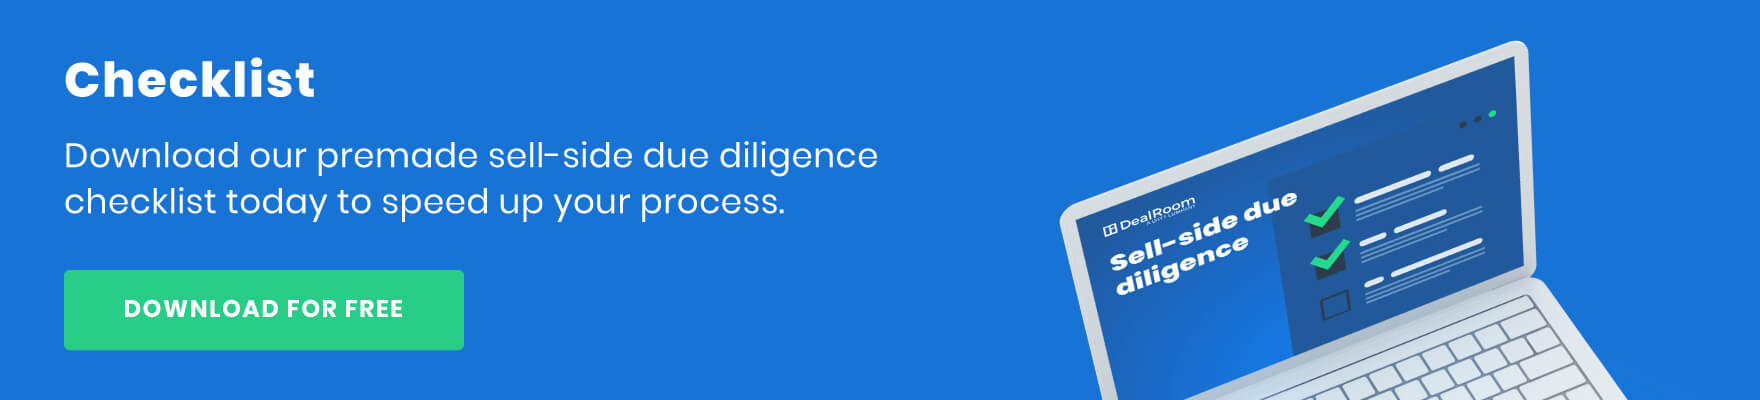 sell side due diligence checklist